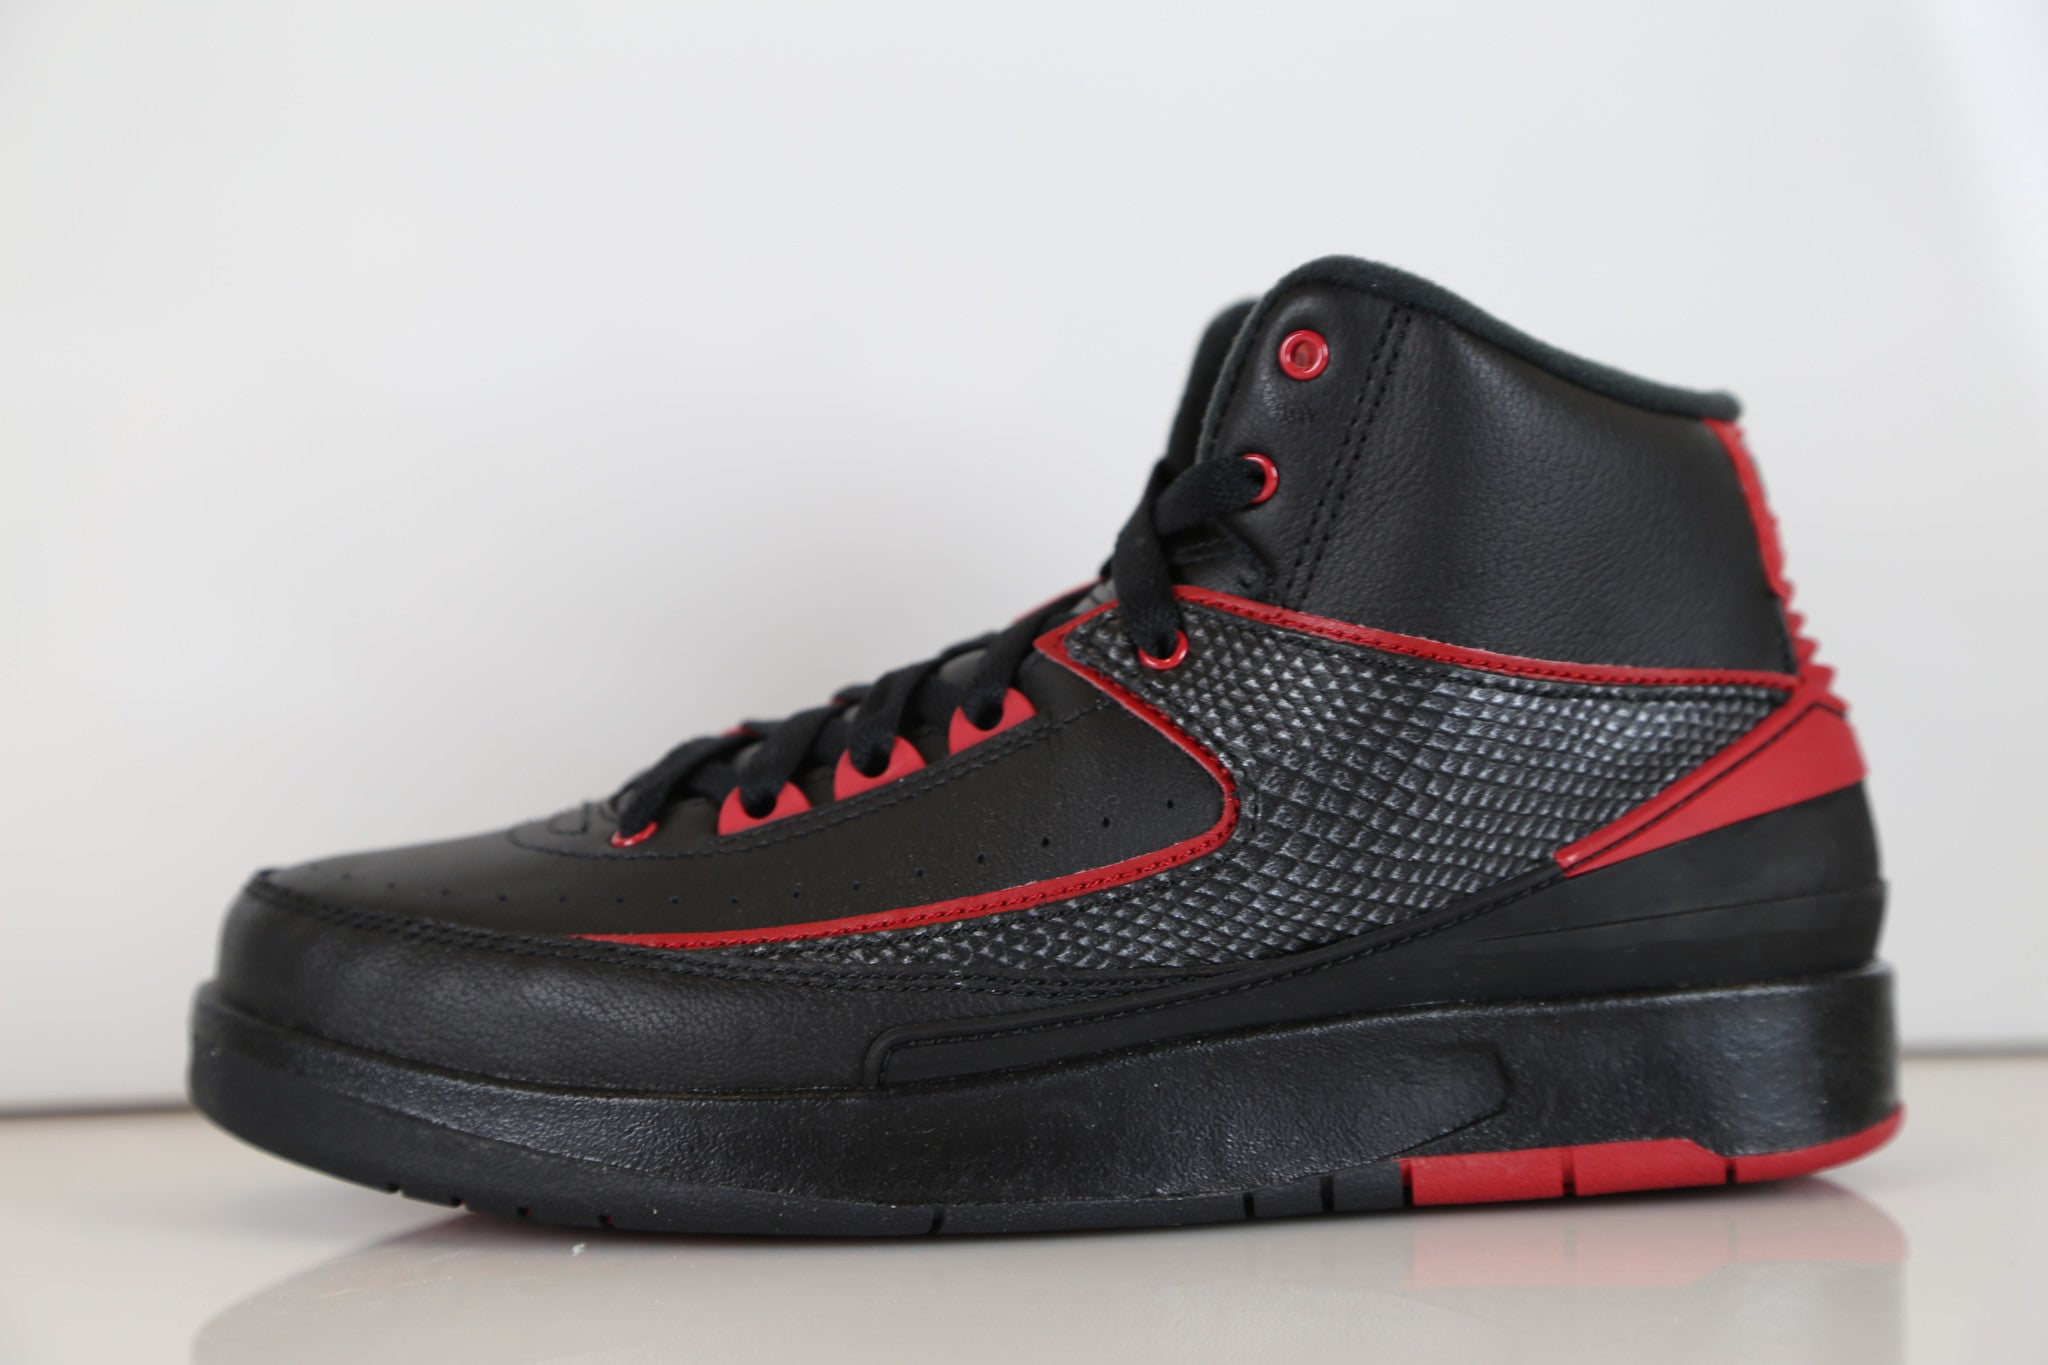 7c58858d8ee Nike Air Jordan Retro 2 Alternate 87 Black Red 834274-001 Adult and GS |  Zadehkicks